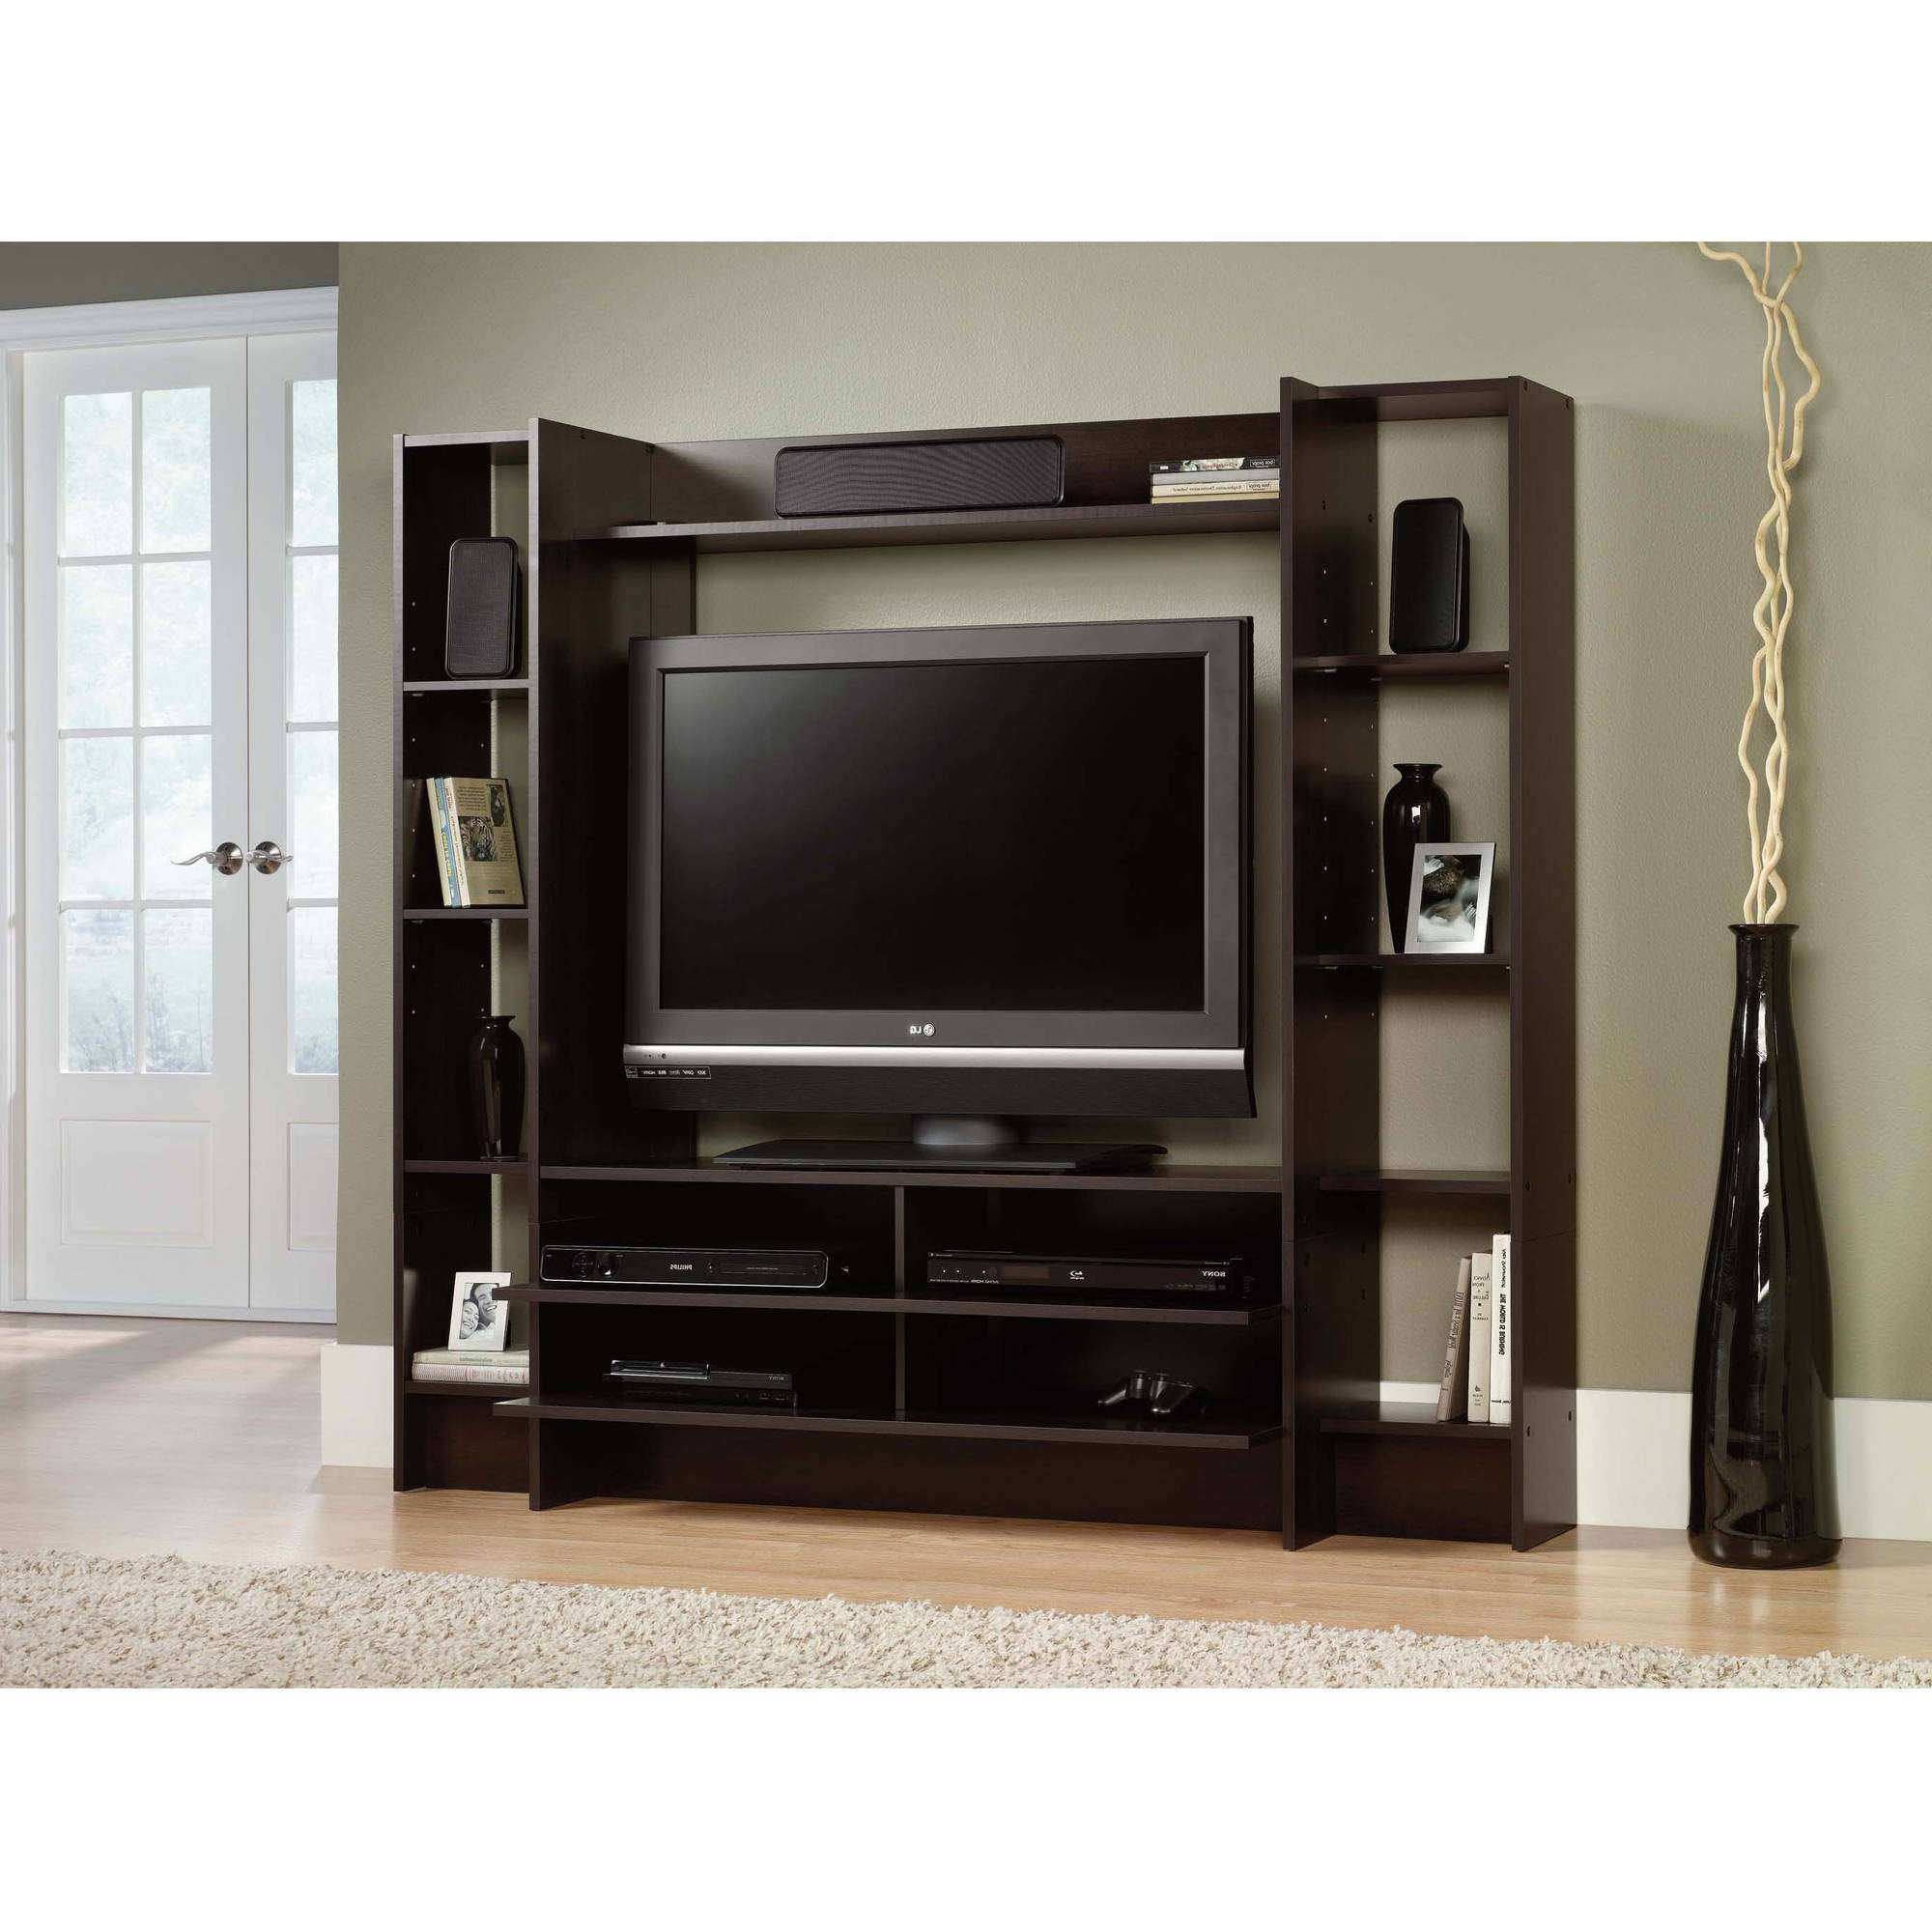 Sauder Beginnings Entertainment Wall System For Tvs Up To 42 Inside Cherry Wood Tv Stands (View 11 of 15)